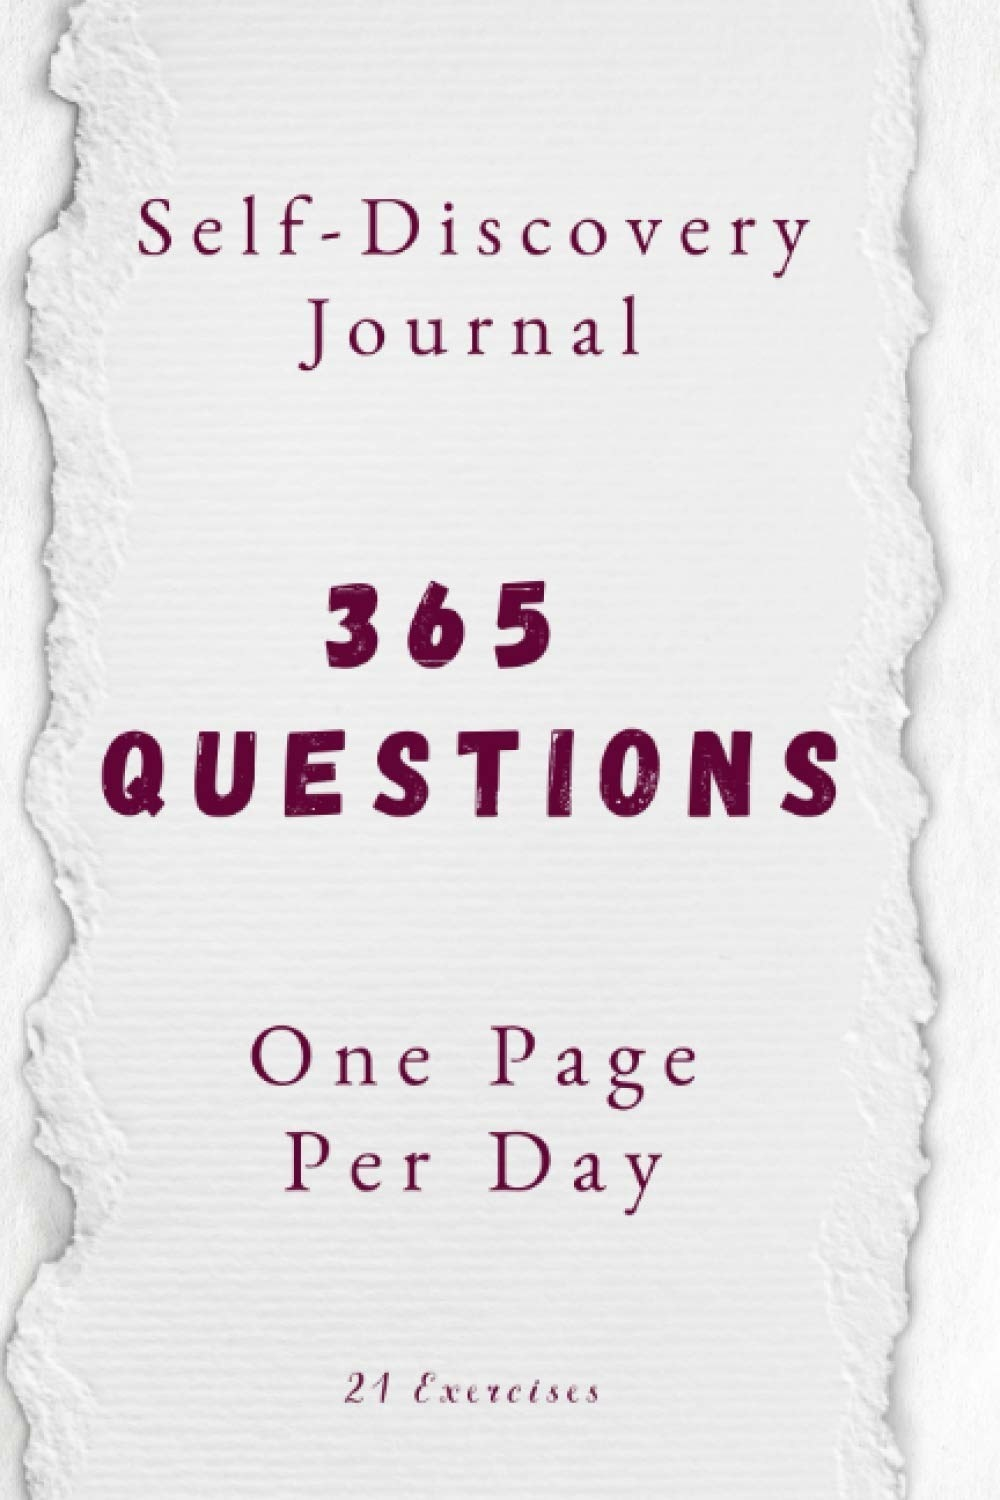 The cover of the self-discovery journal